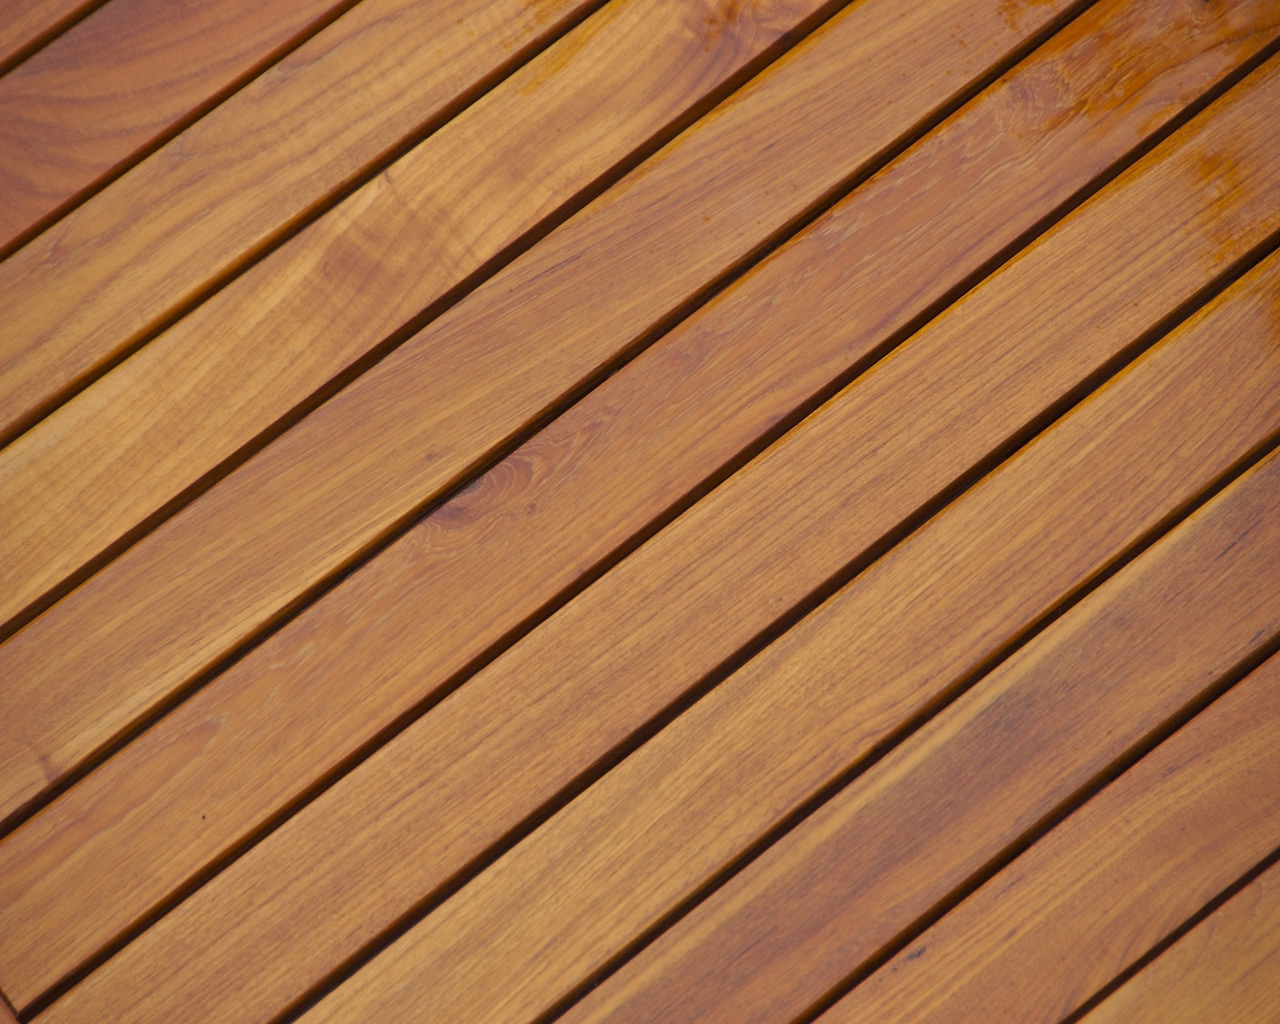 Wood table background hd - Backgrounds Provide A Clean Earthy Look For Your Phone Enjoy Wallpaper A Table Wallpapersafari